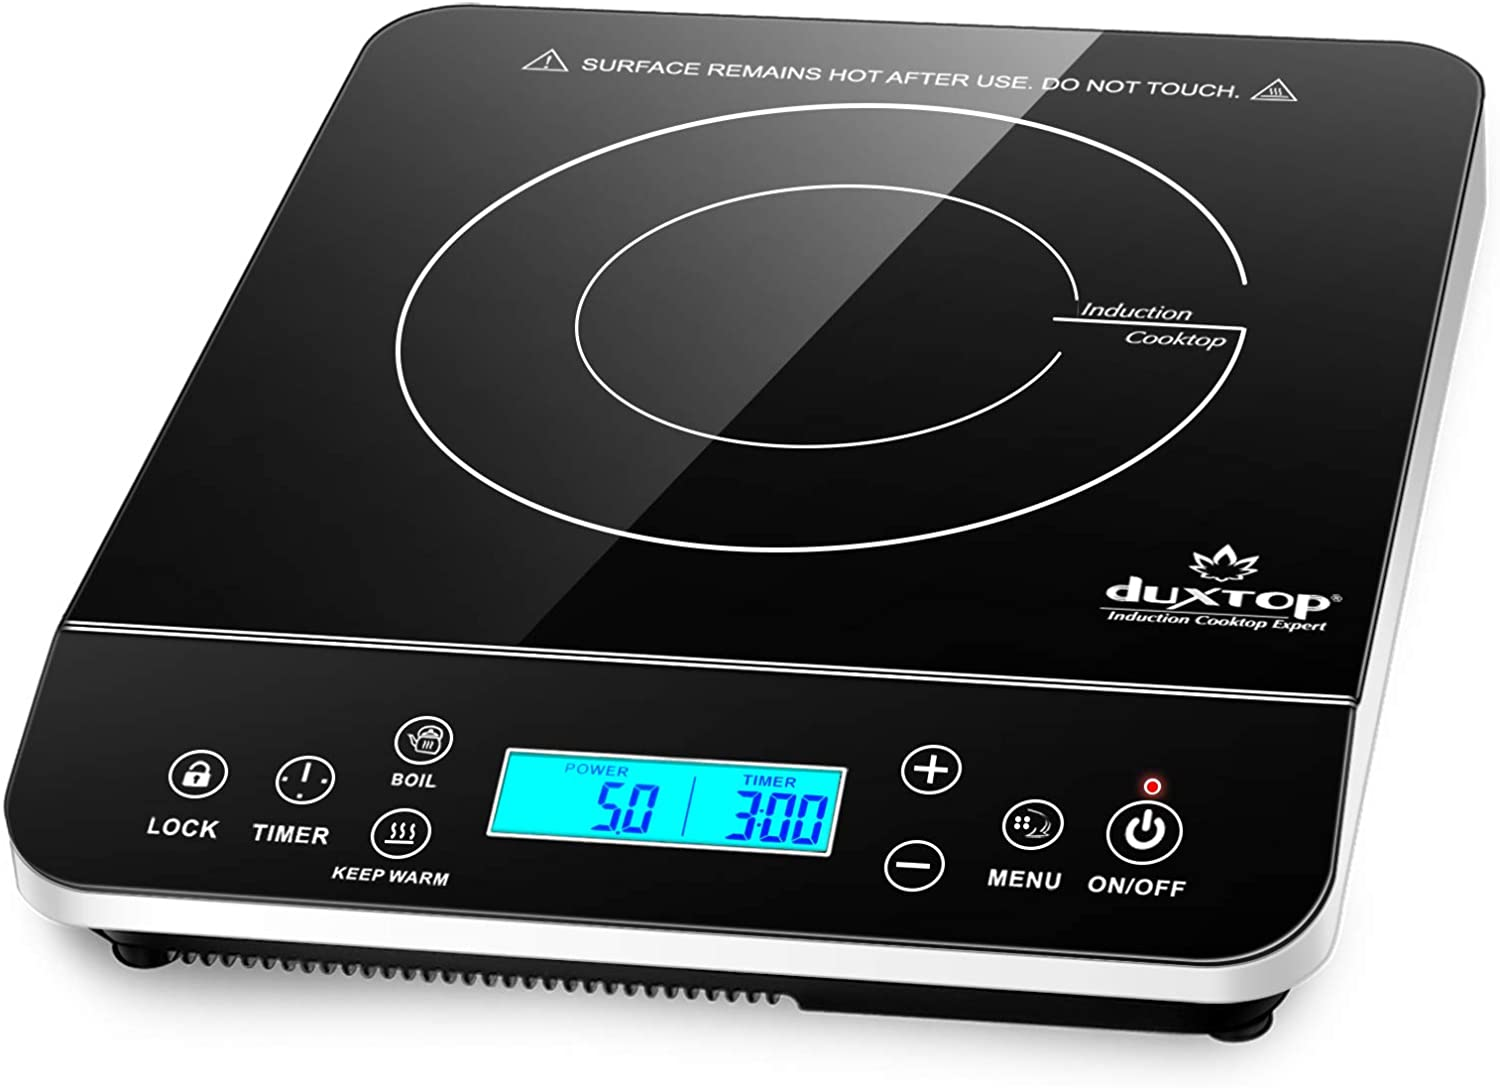 Duxtop 9600LS Portable Induction Cooktop